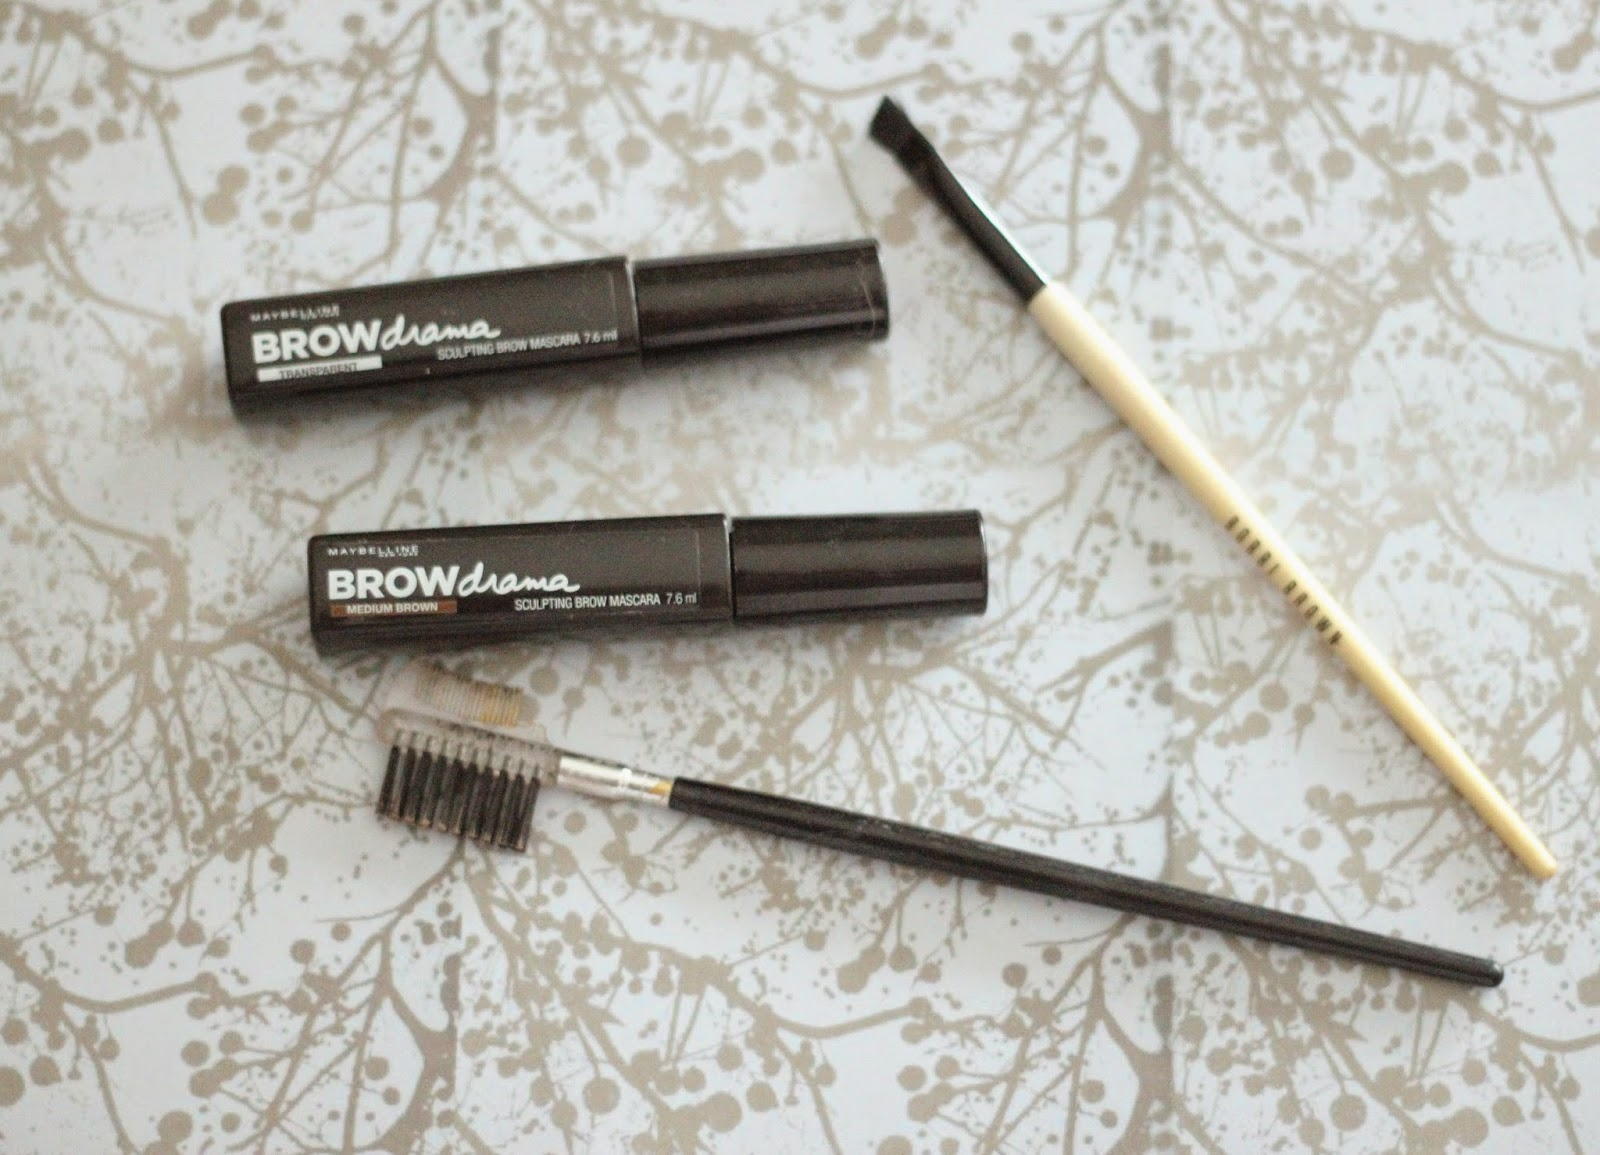 photo-maybelline-brow_drama-transparente-mascara_cejas